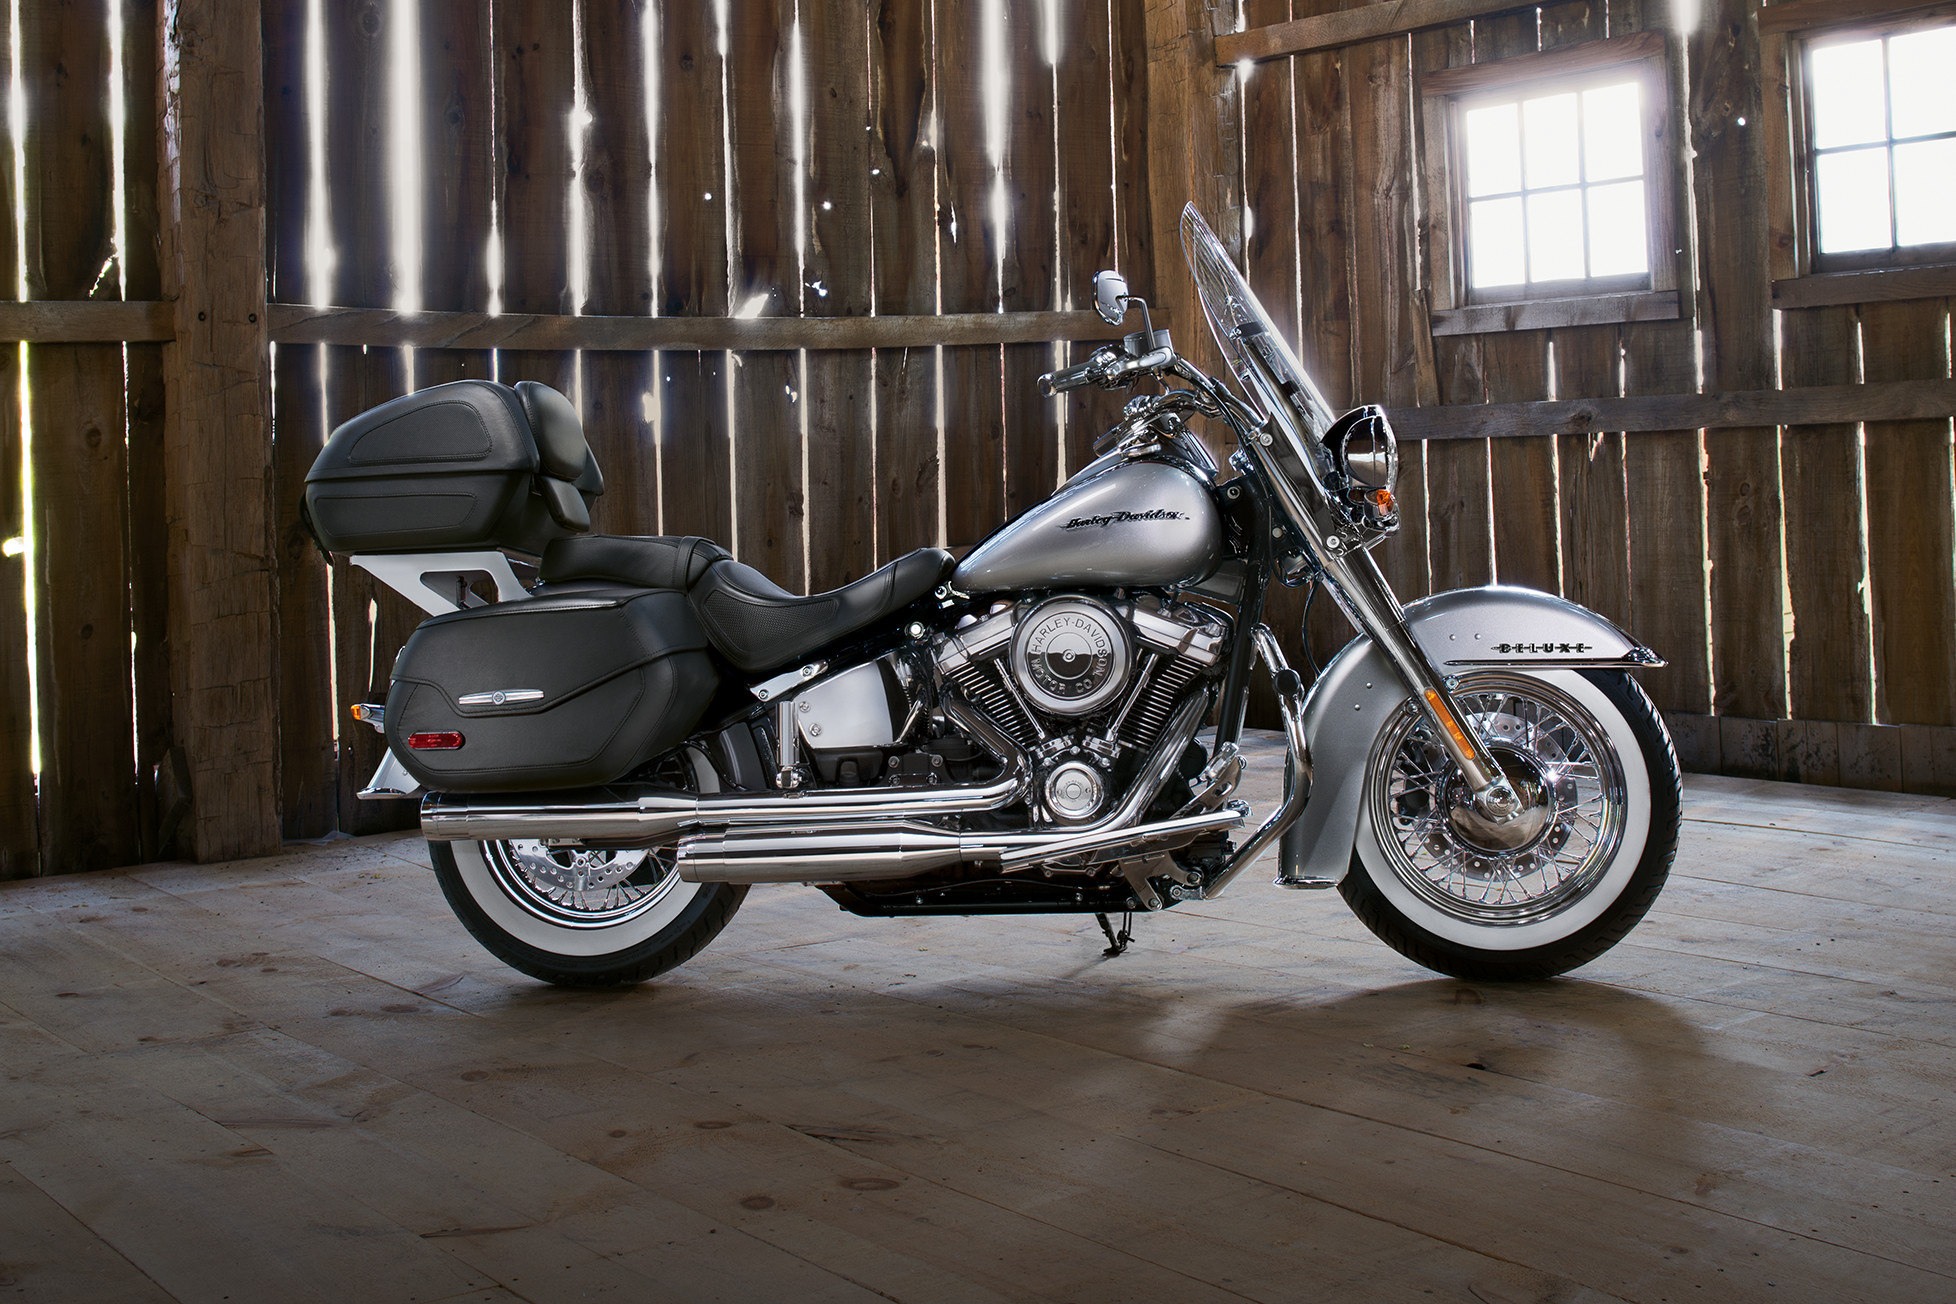 softail-deluxe-harley-davidson-perugia